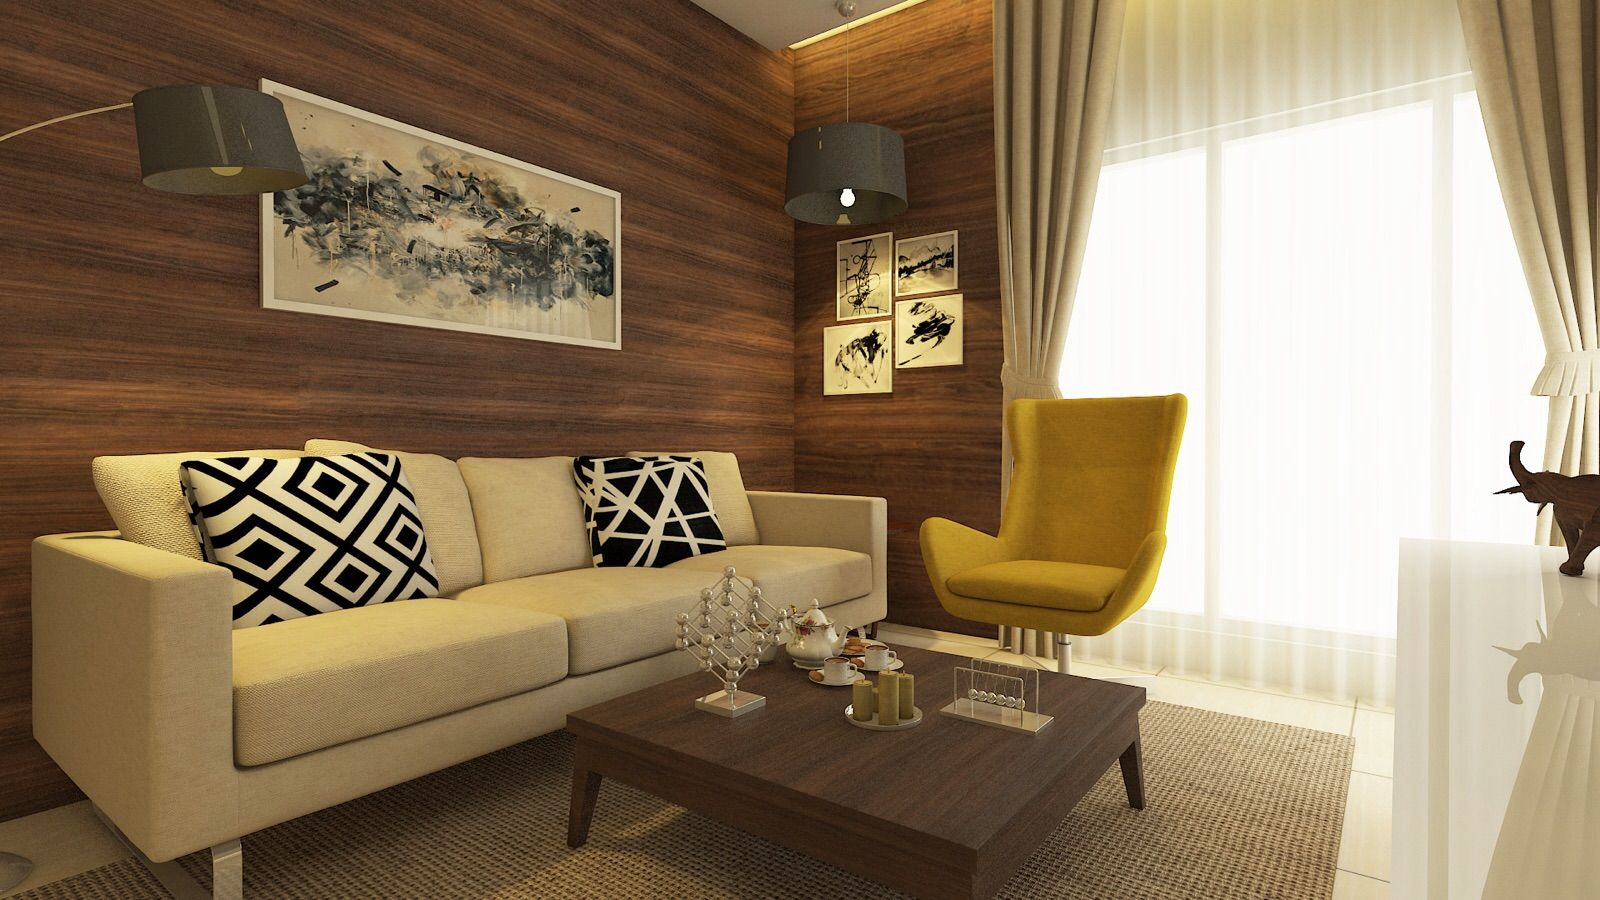 Living Room Furniture Mumbai living room-residence/ sample flat for zara habitats llp, mumbai